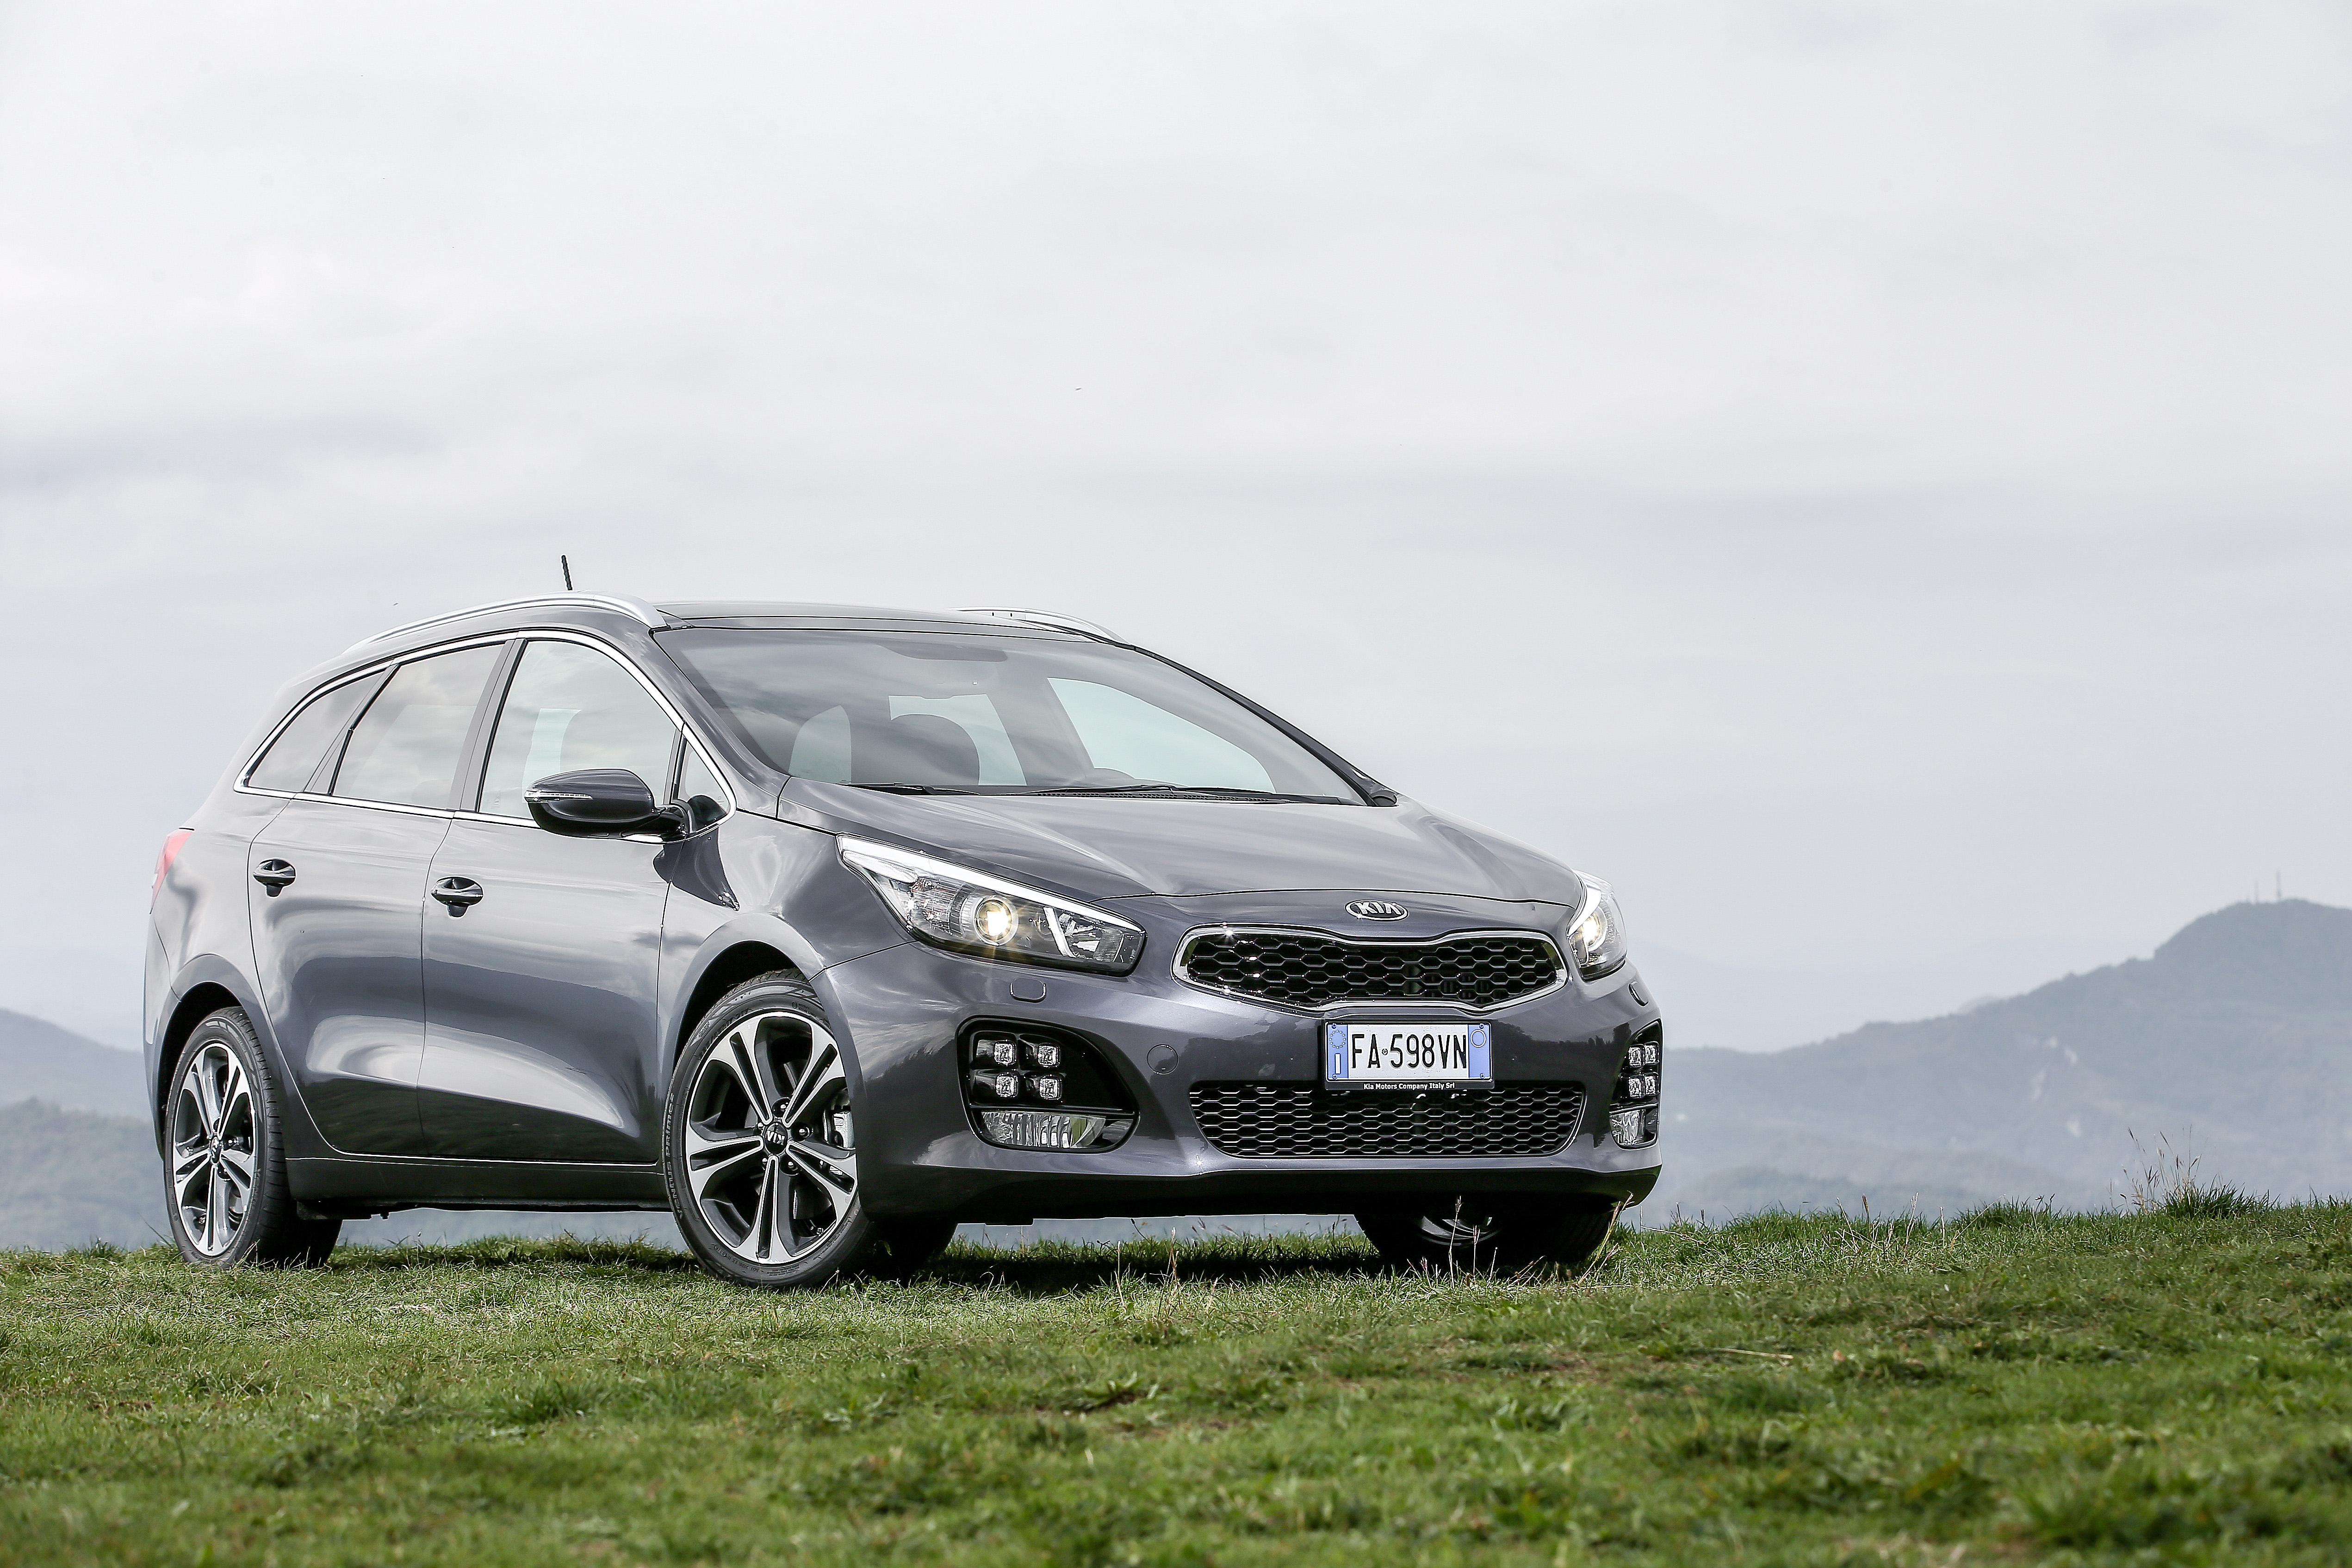 Trimestre record per Kia Motors Europe